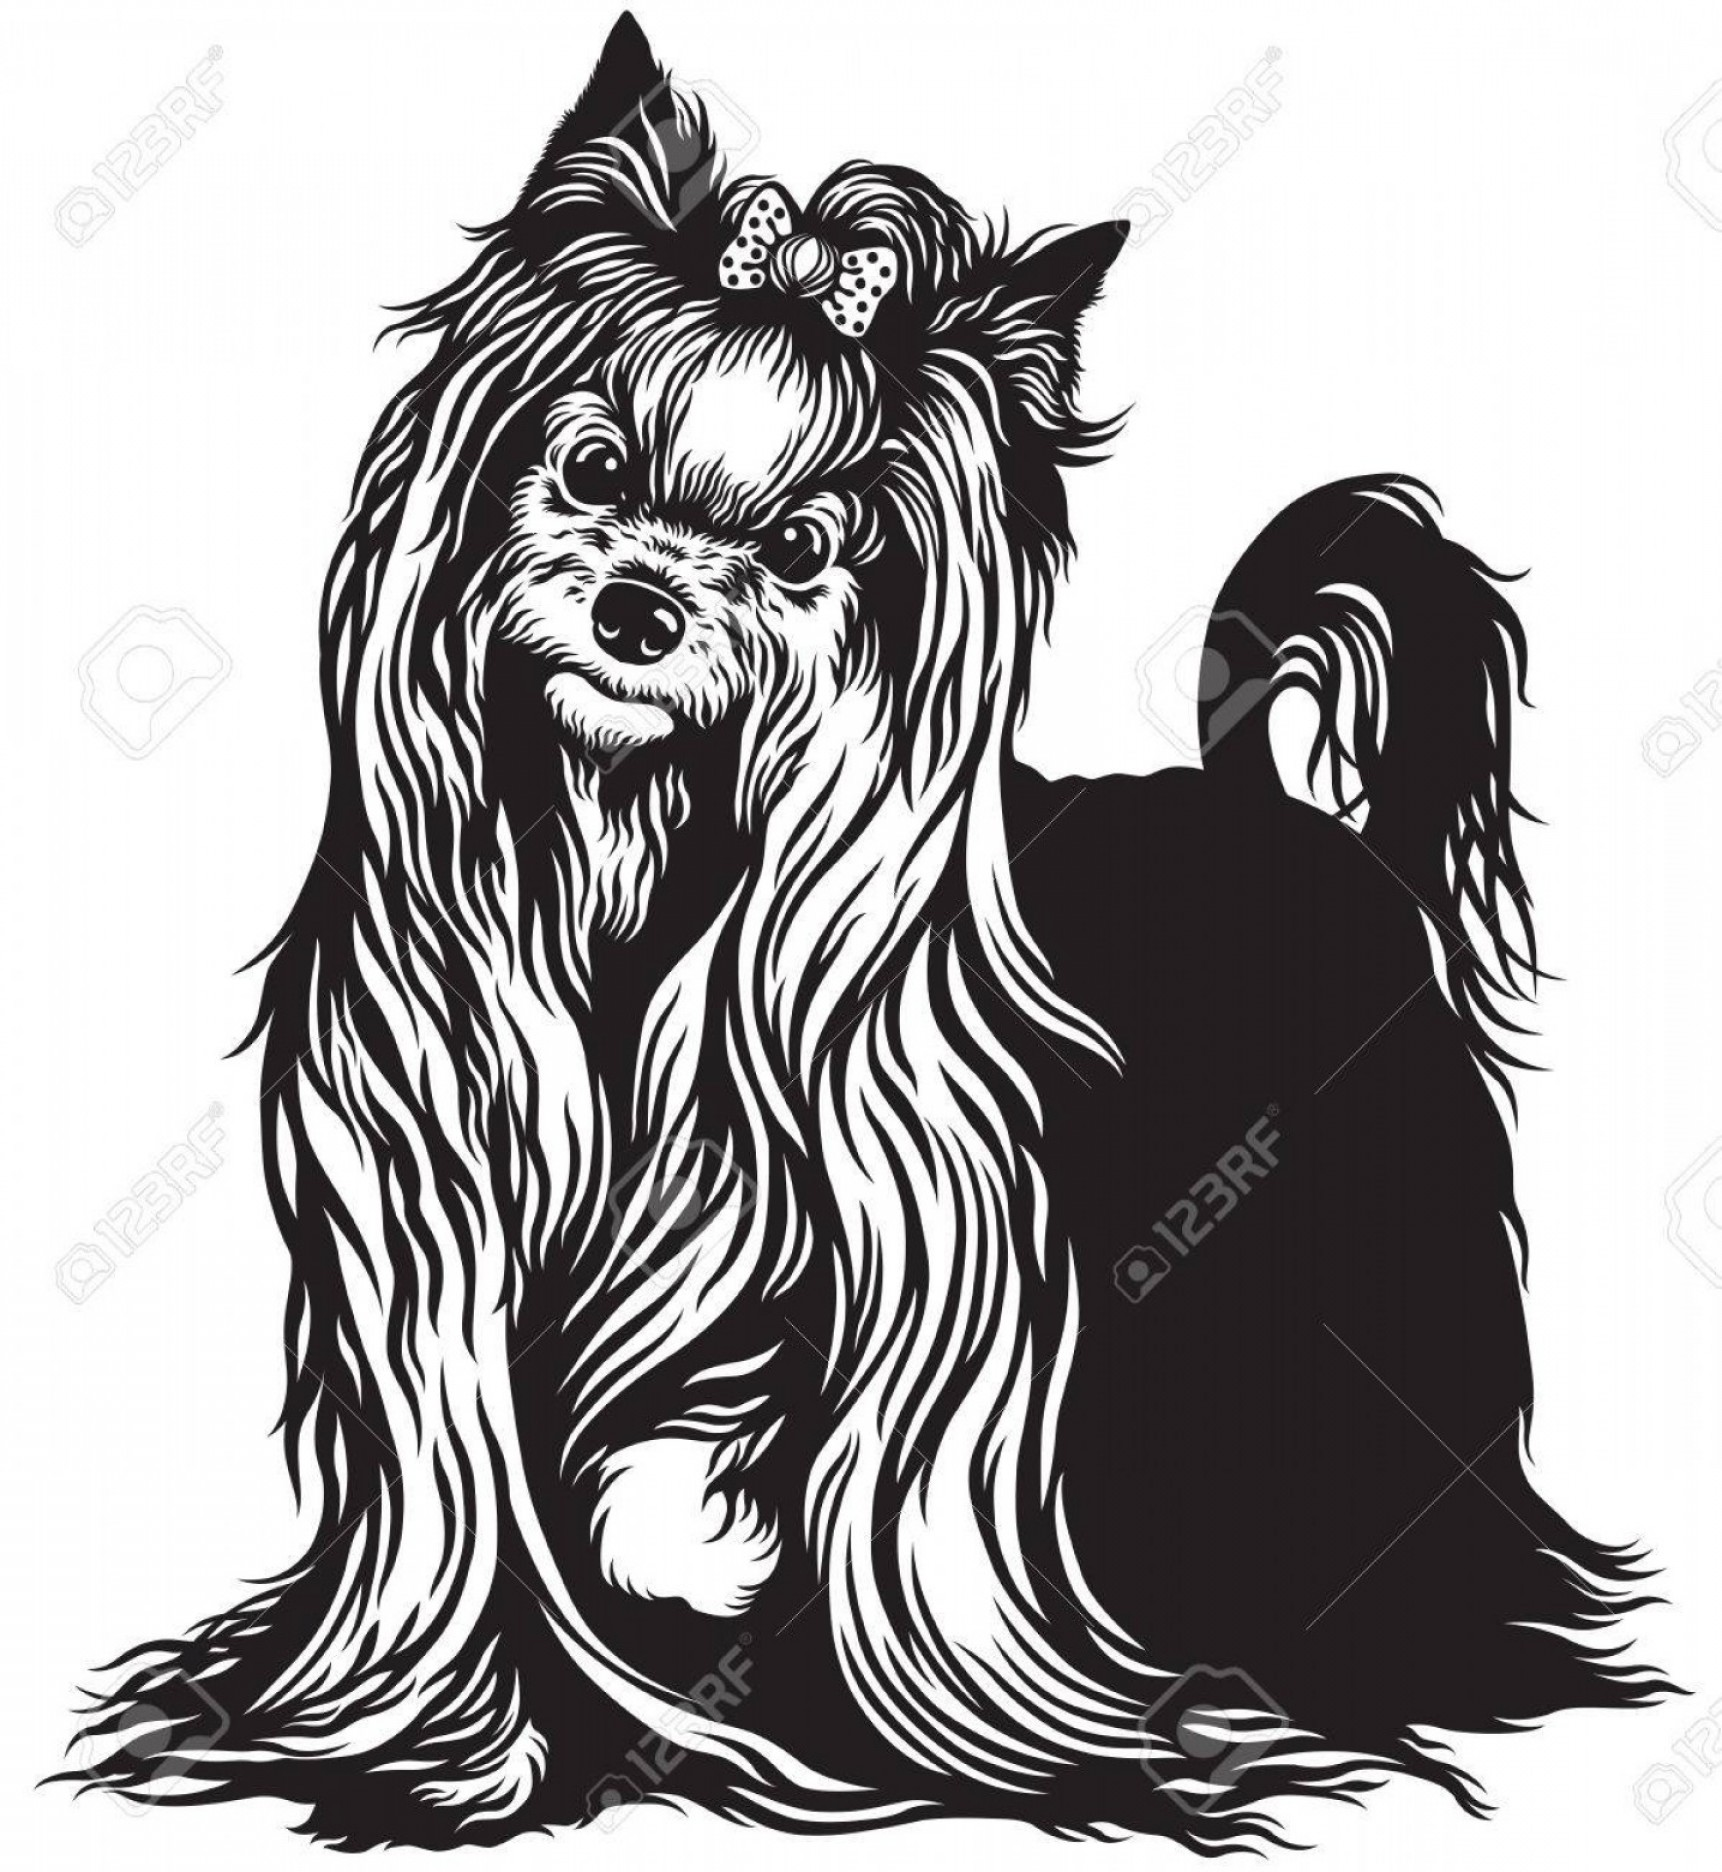 Cute Yorkie Dog Vector: Photostock Vector Yorkshire Terrier Dog Black And White Image